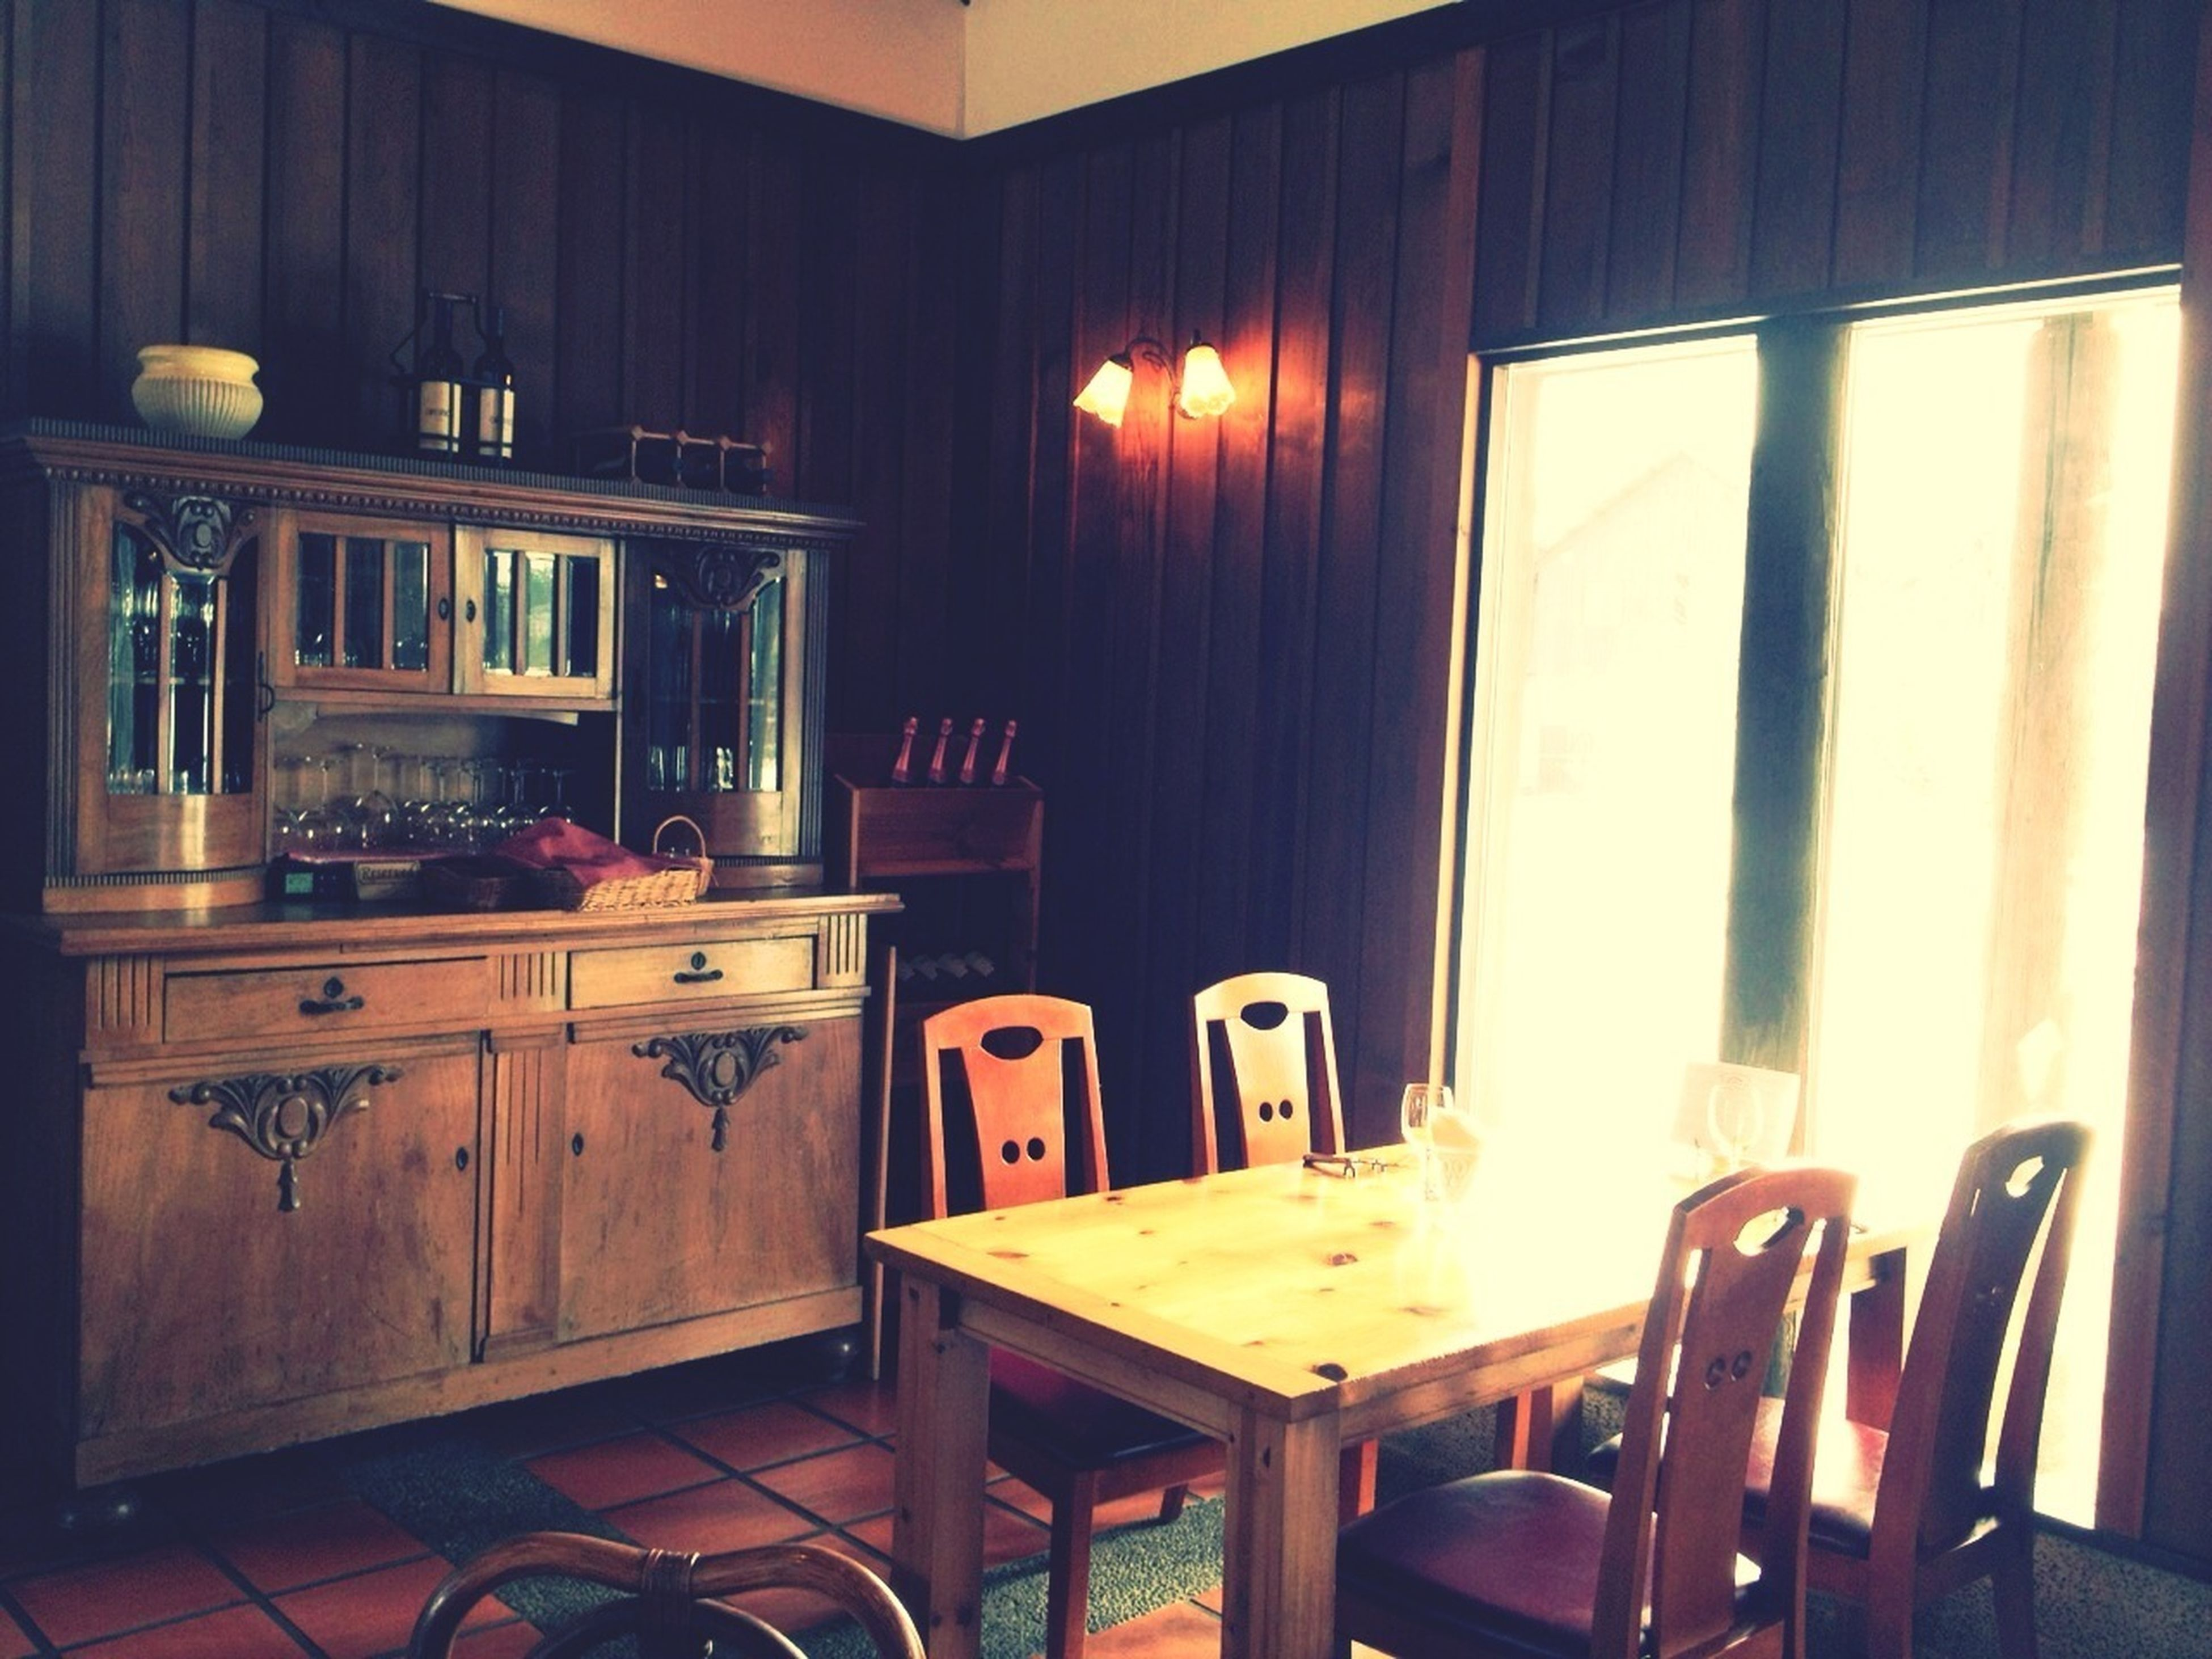 indoors, window, chair, absence, table, empty, home interior, architecture, built structure, interior, wood - material, no people, house, furniture, old-fashioned, shelf, door, glass - material, old, restaurant